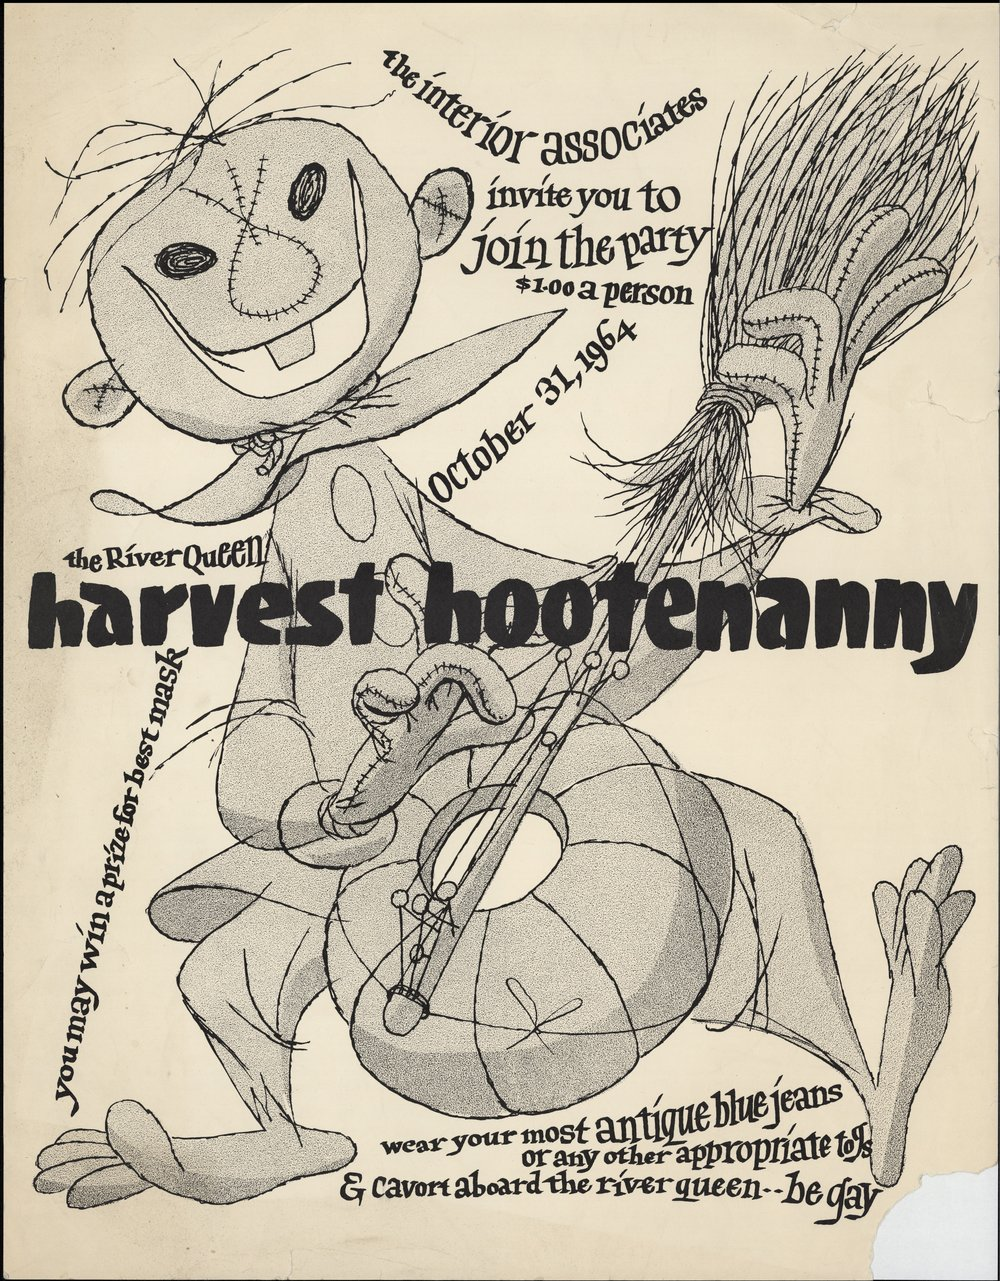 Associates Harvest hootenanny_Hoff_poster_1964_Folder 3_patched.jpg